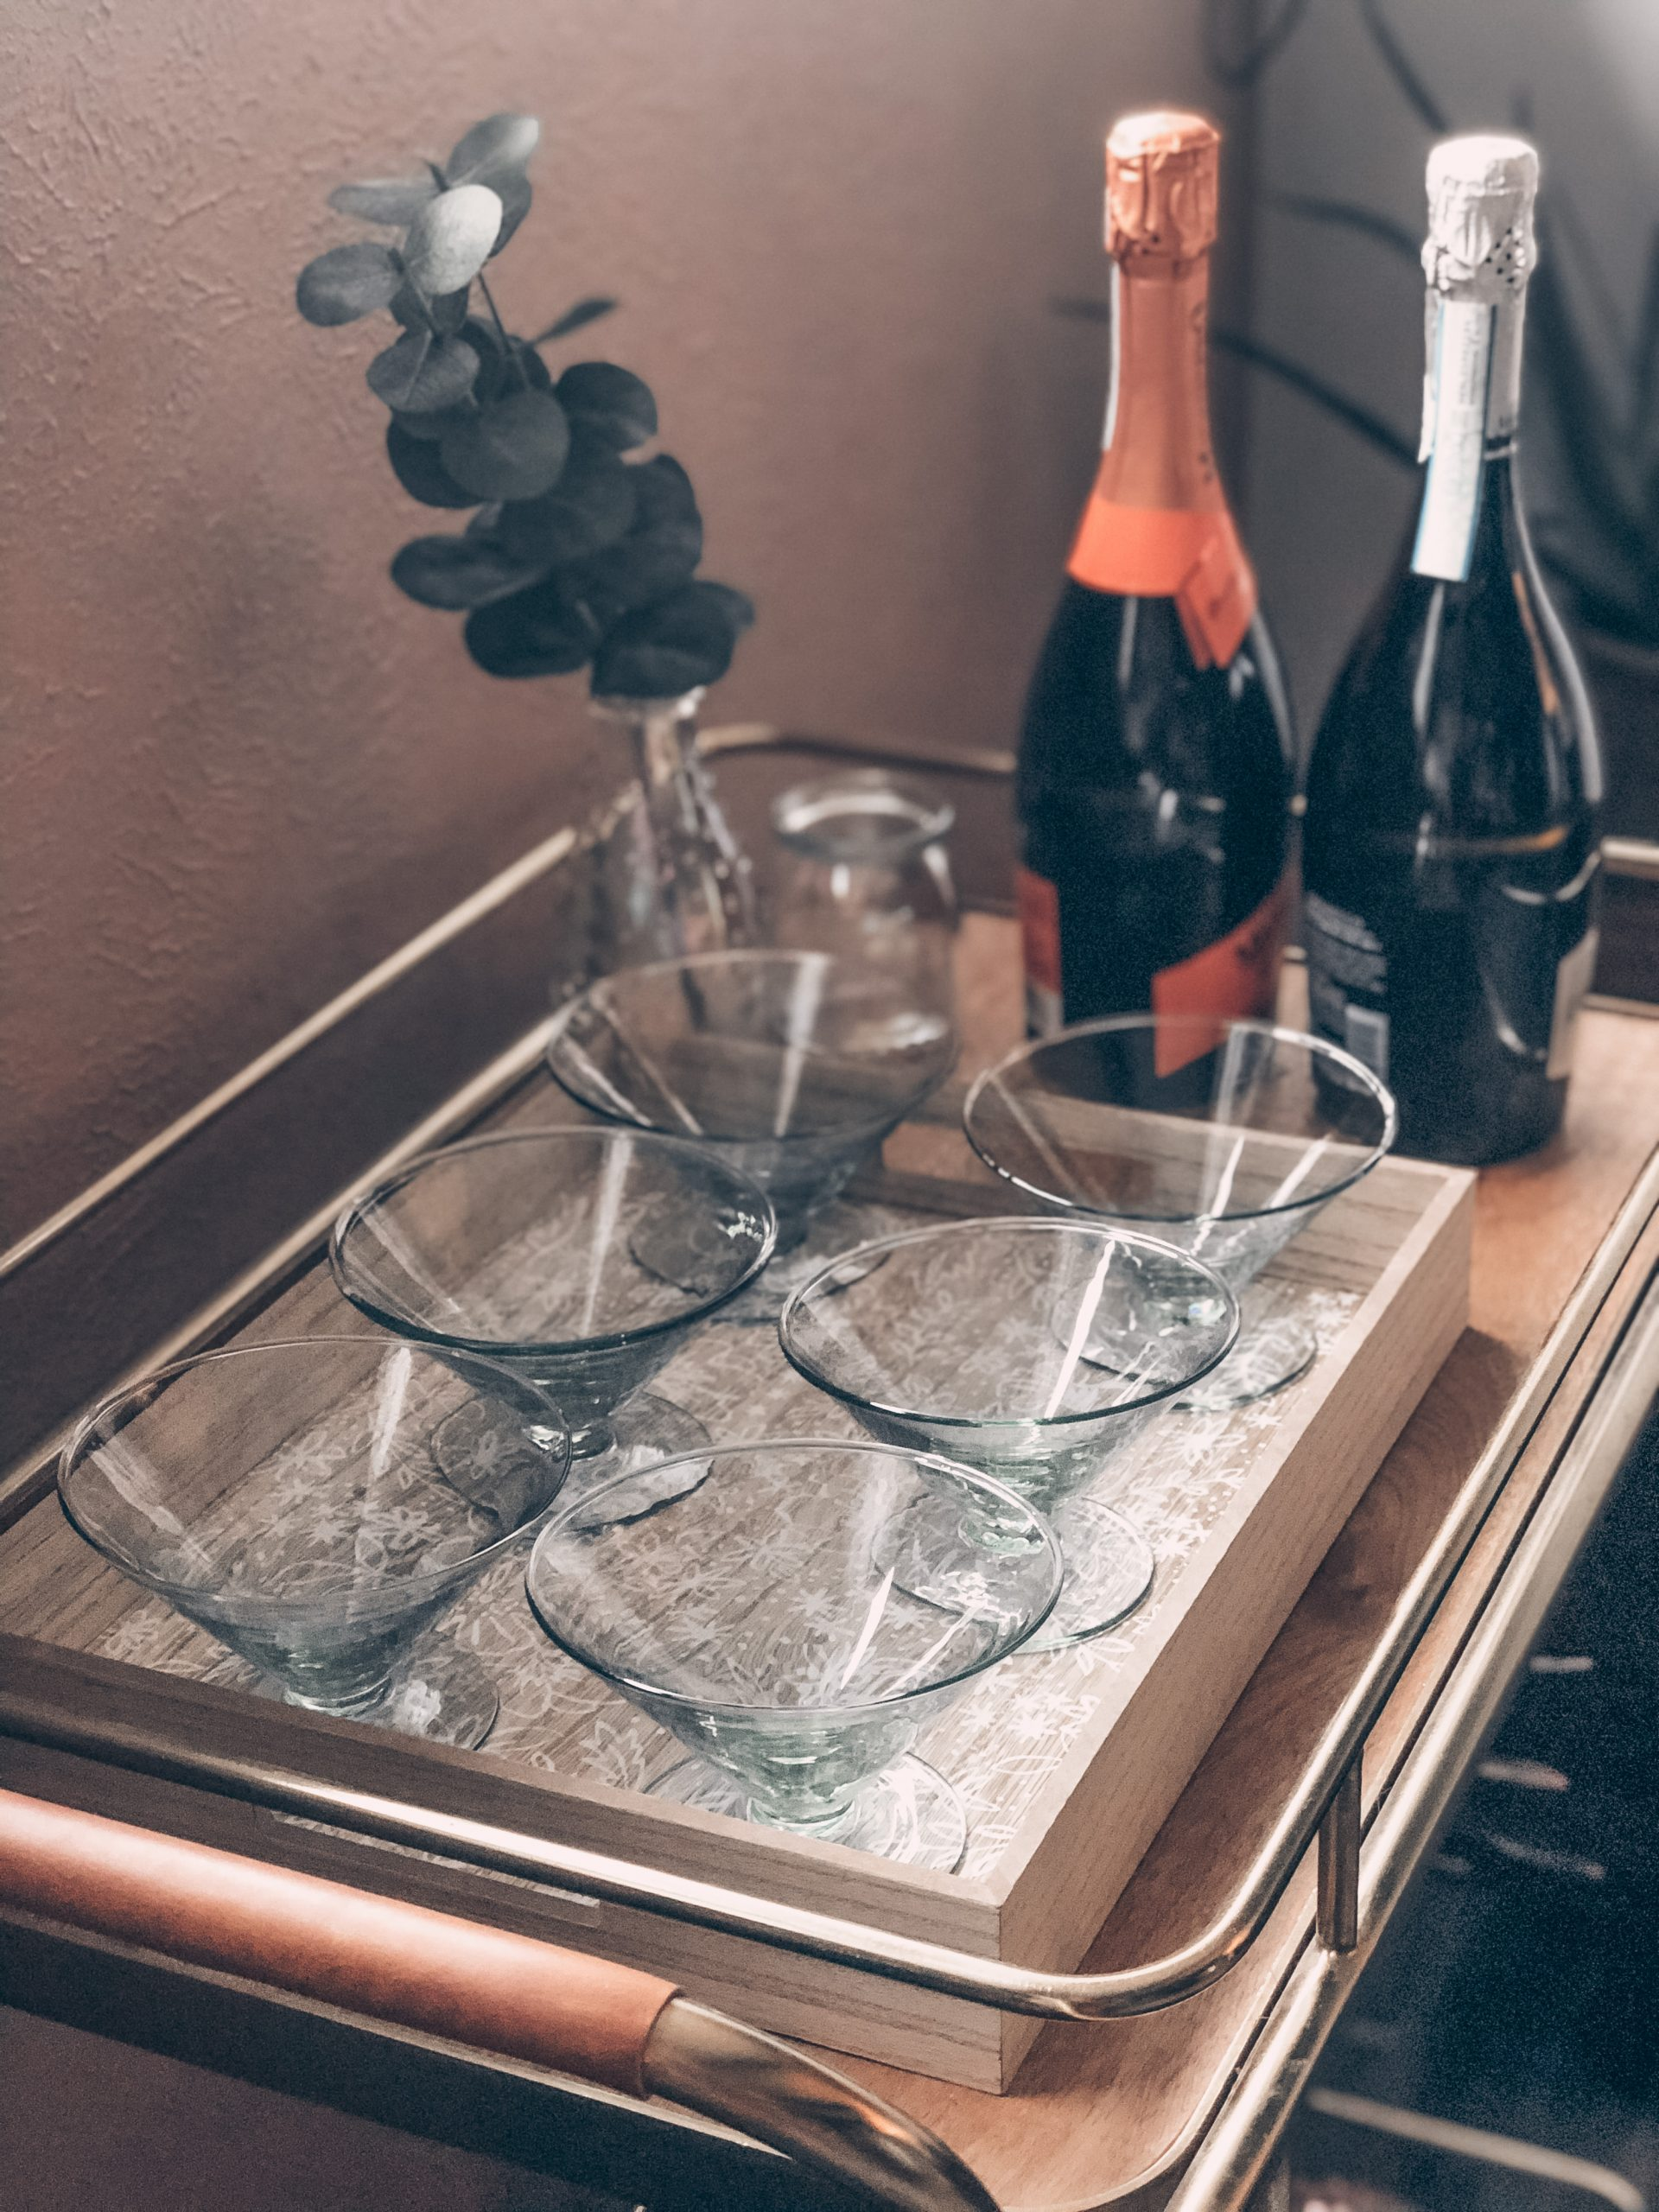 Drinking glasses and champagne on beverage cart